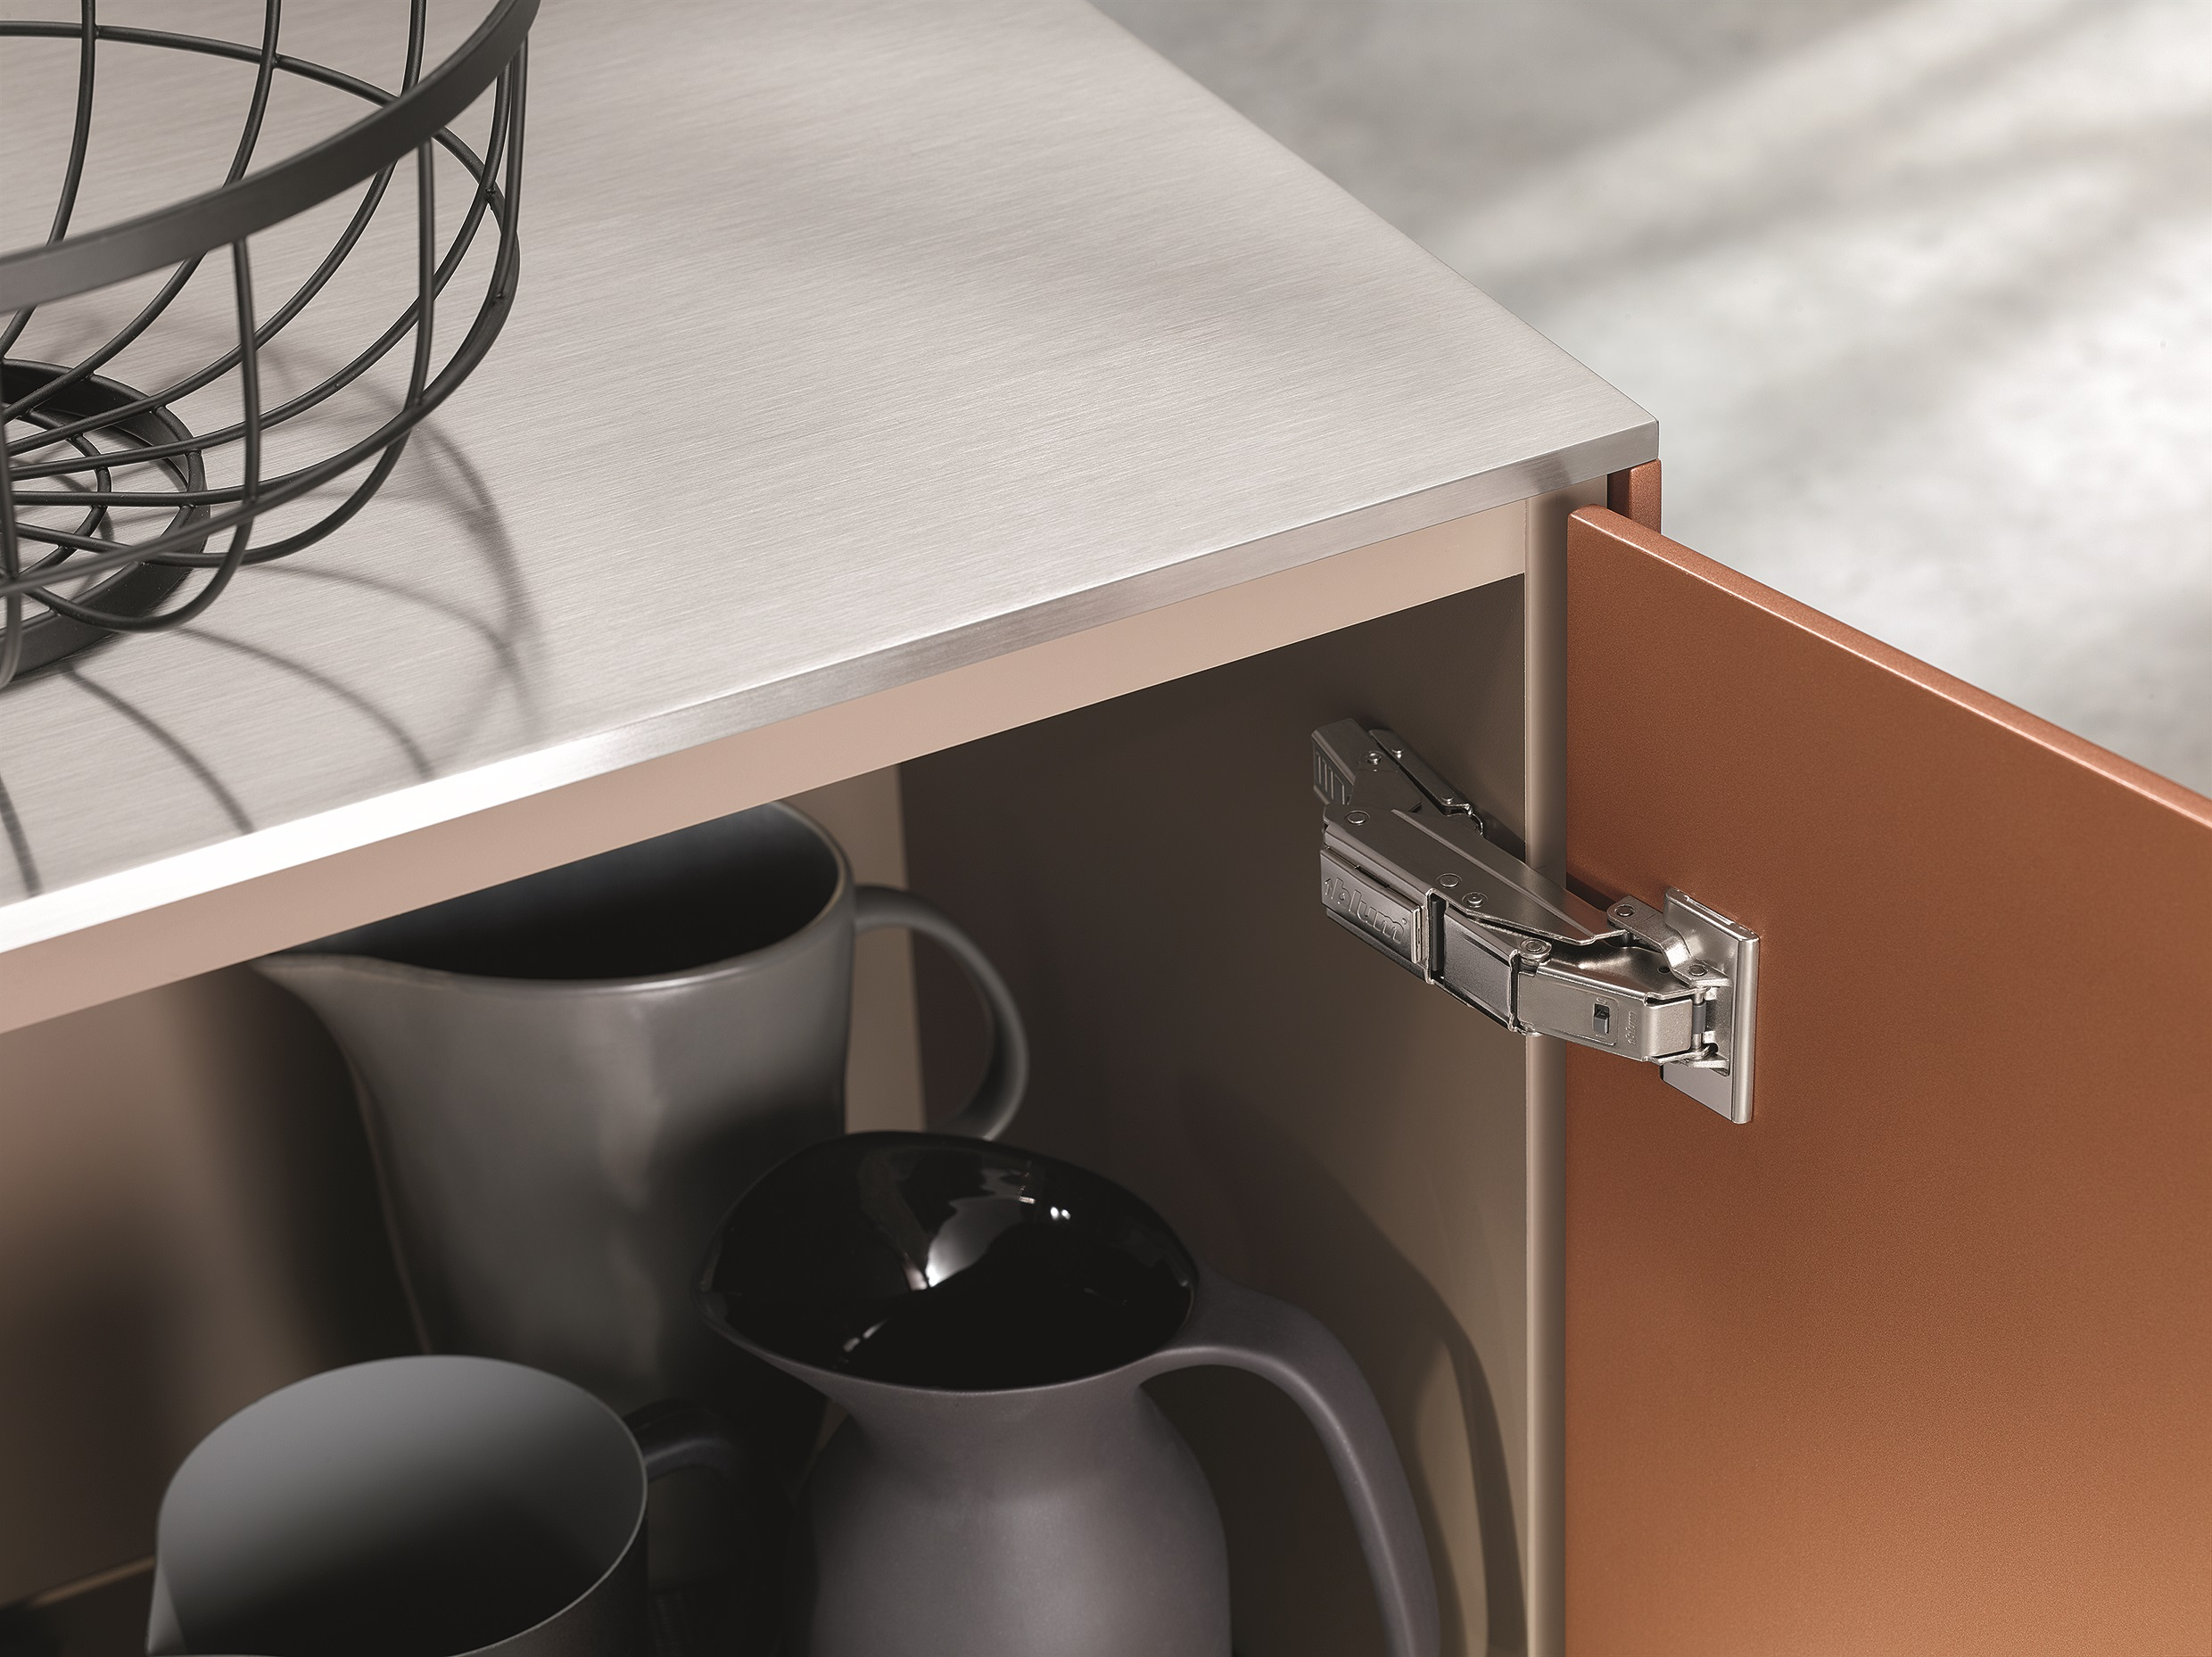 For Thin Door Fronts As Small As 8 Mm: The New Clip Top Blumotion Hinge  With Expando T, The Clever Mounting System. Photo: Blum